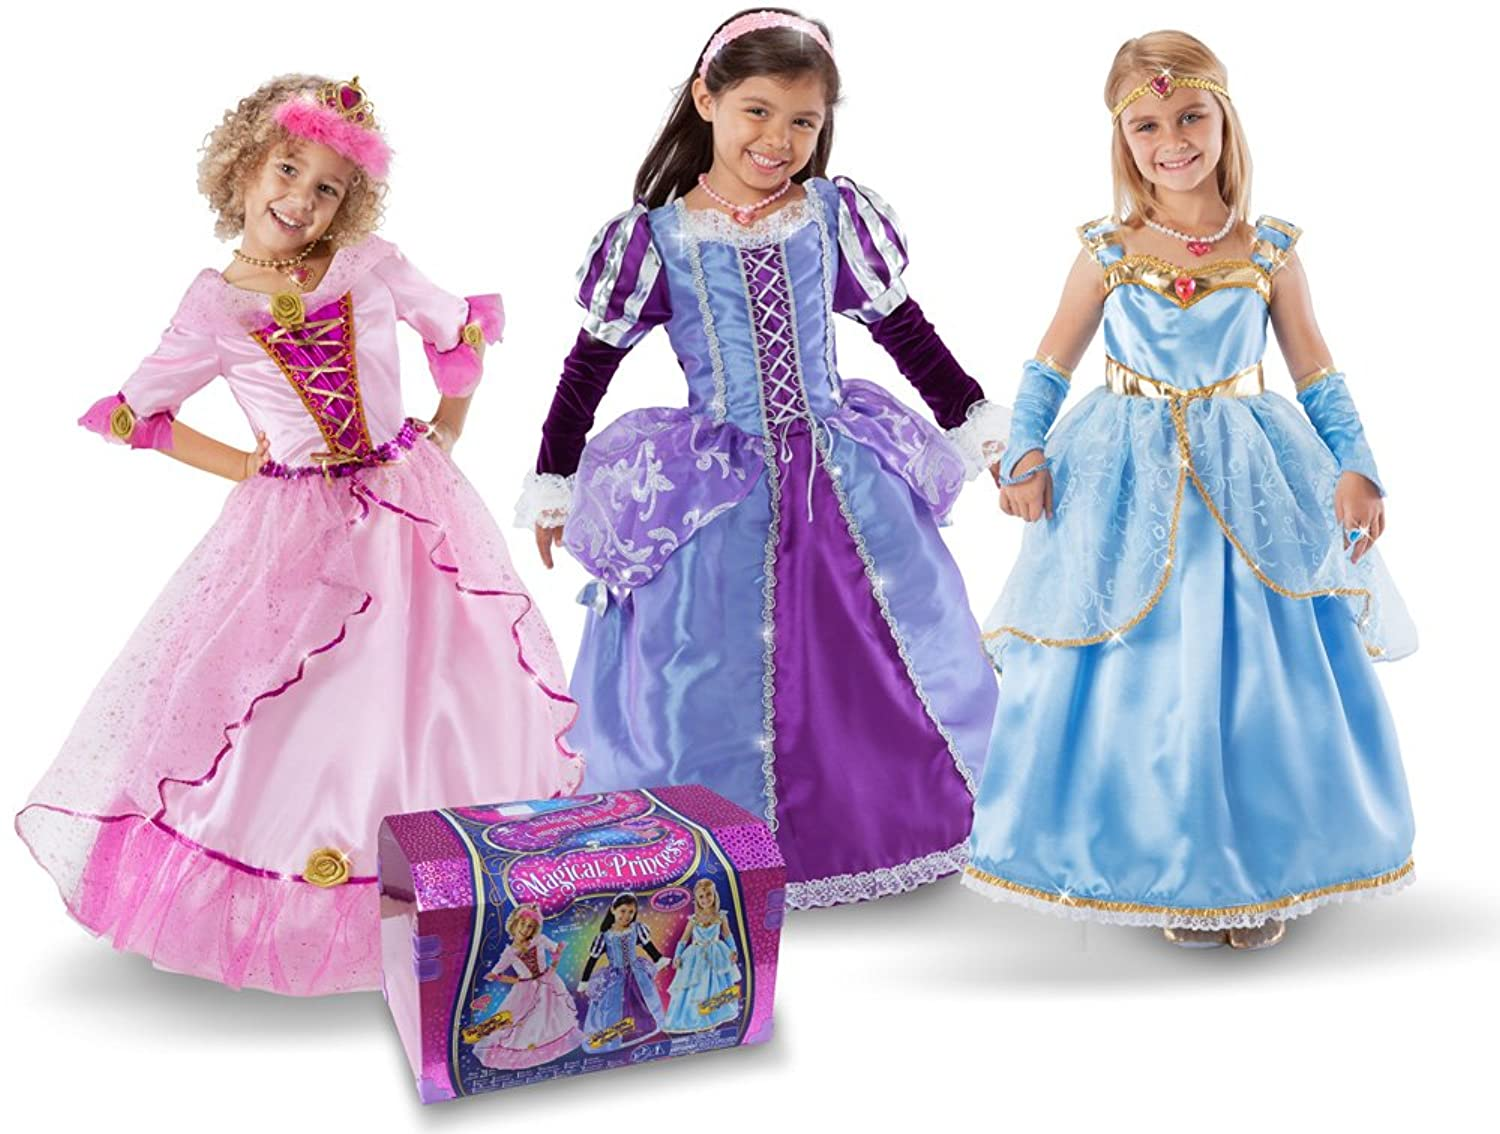 Princess Factory by Teetot Magical Princess Dress Up Chest